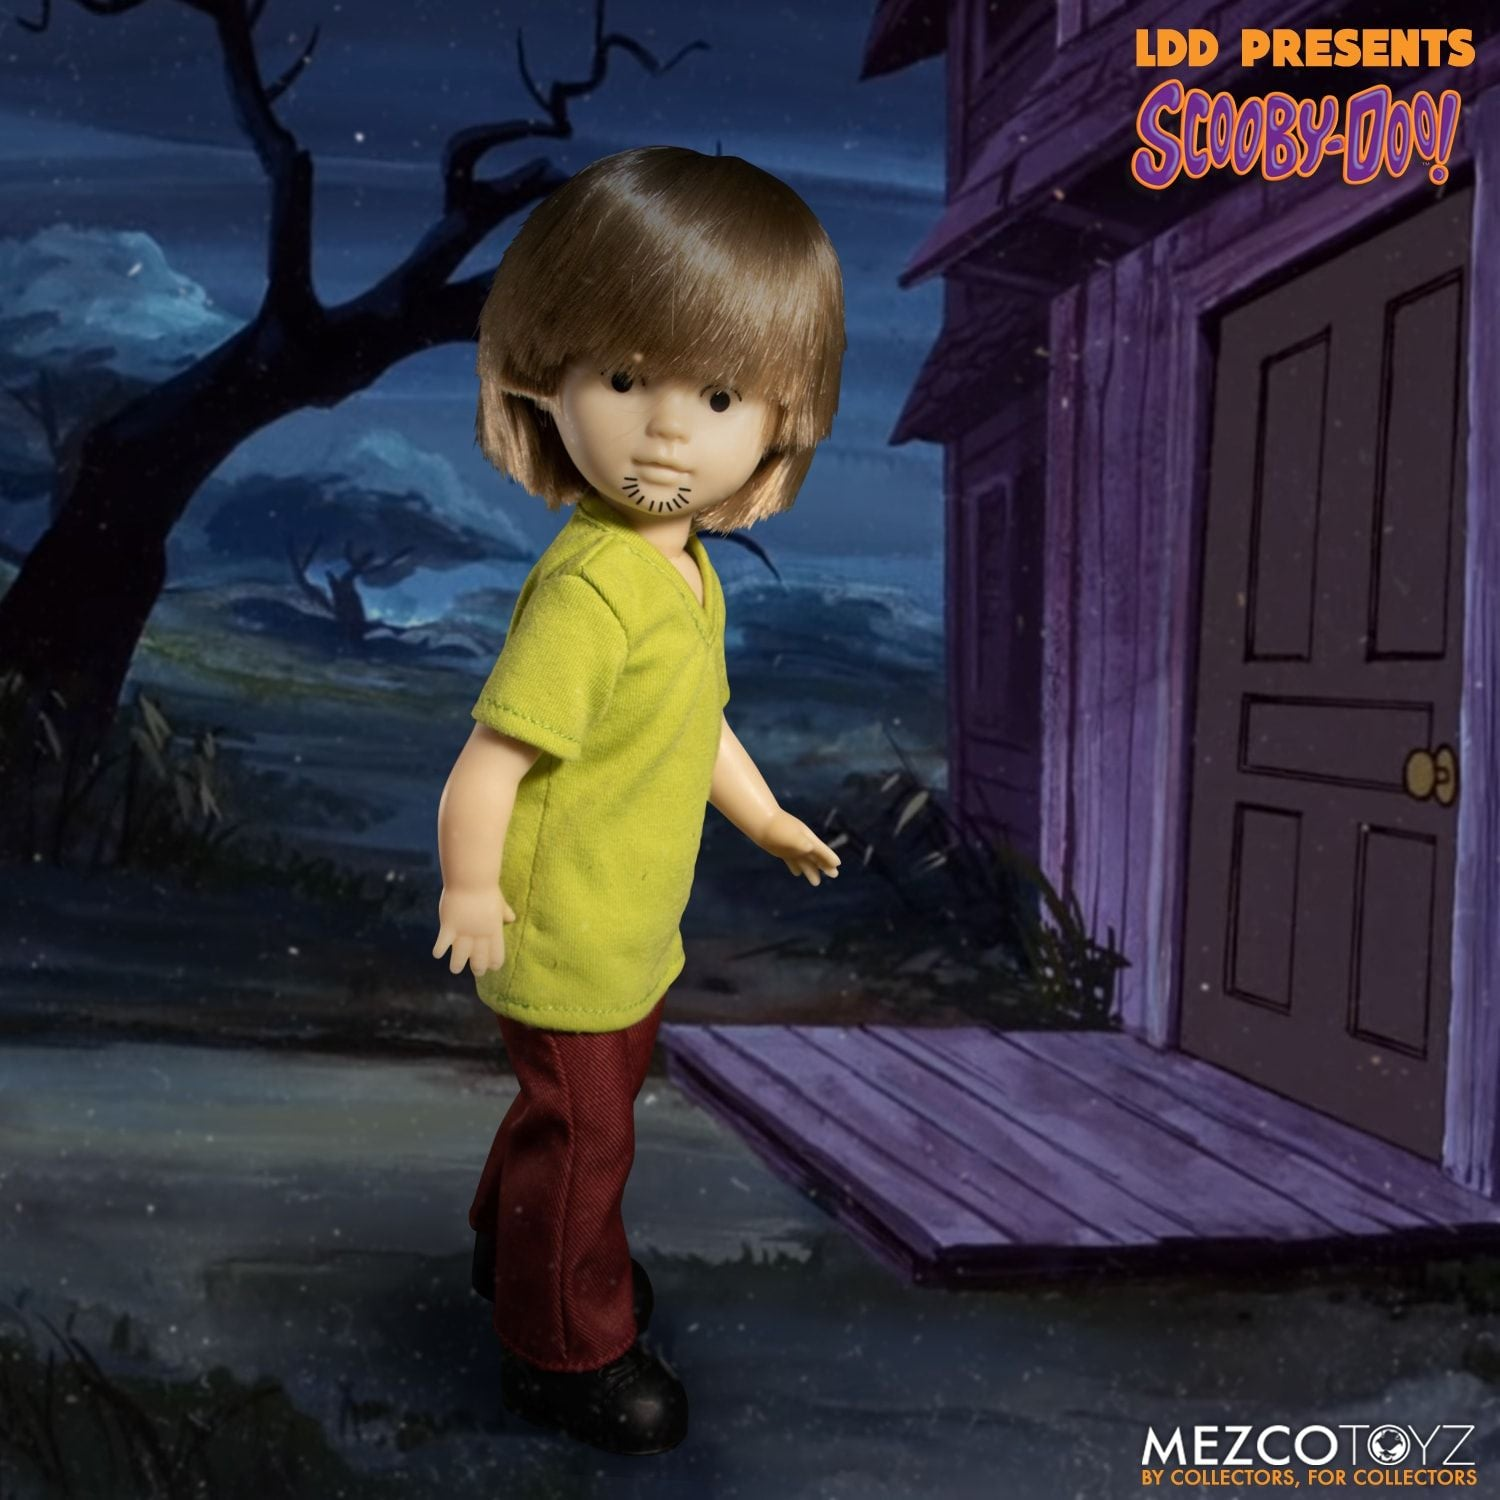 LDD Presents Scooby-Doo & Mystery Inc. Shaggy